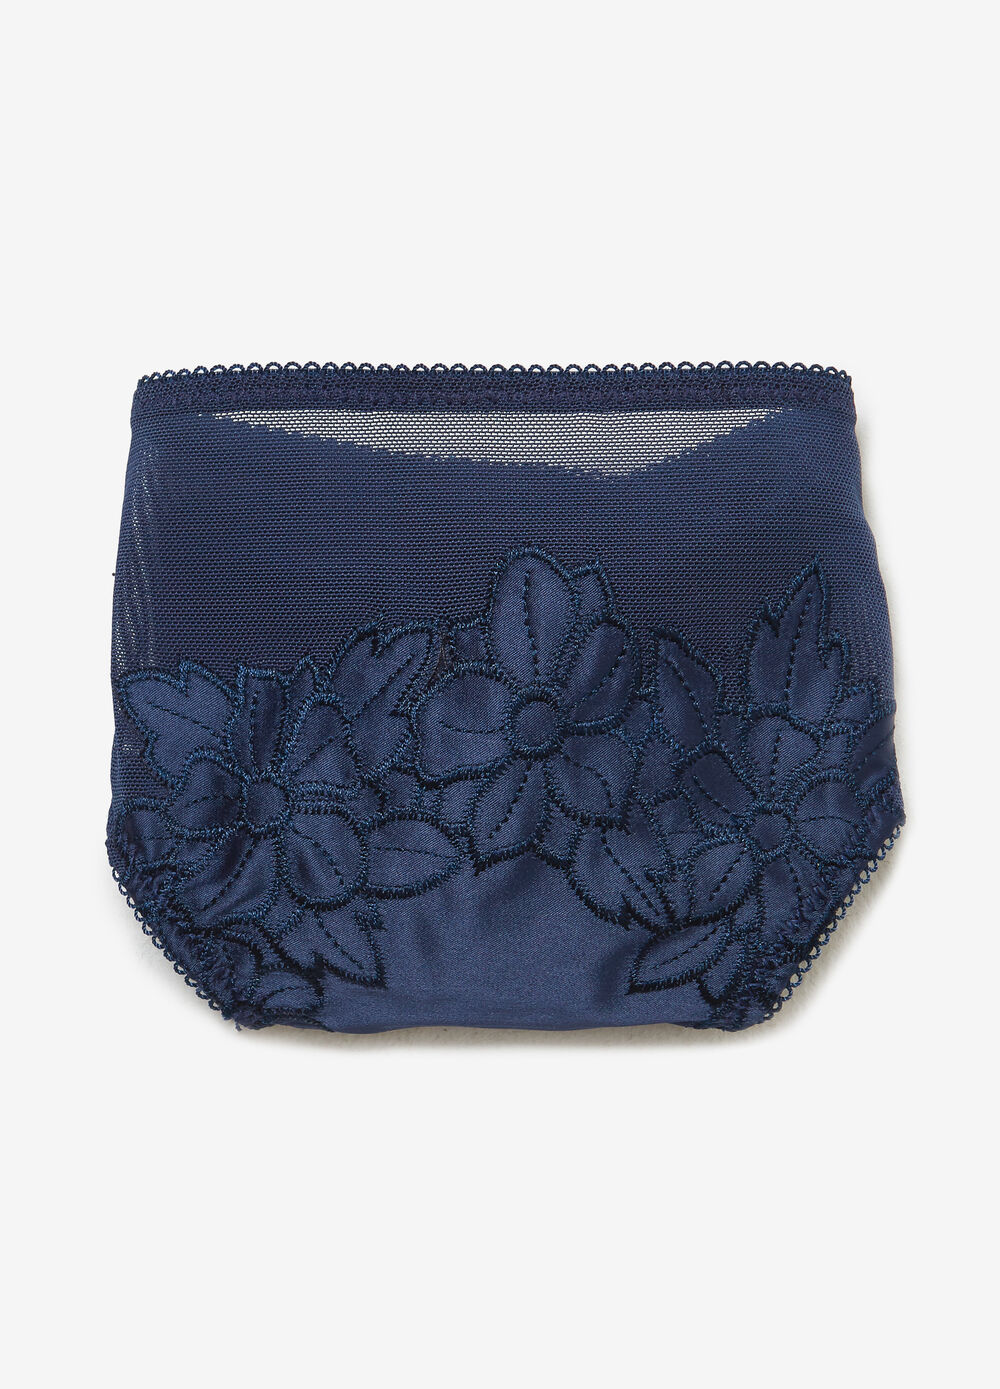 Stretch satin thong with floral embroidery